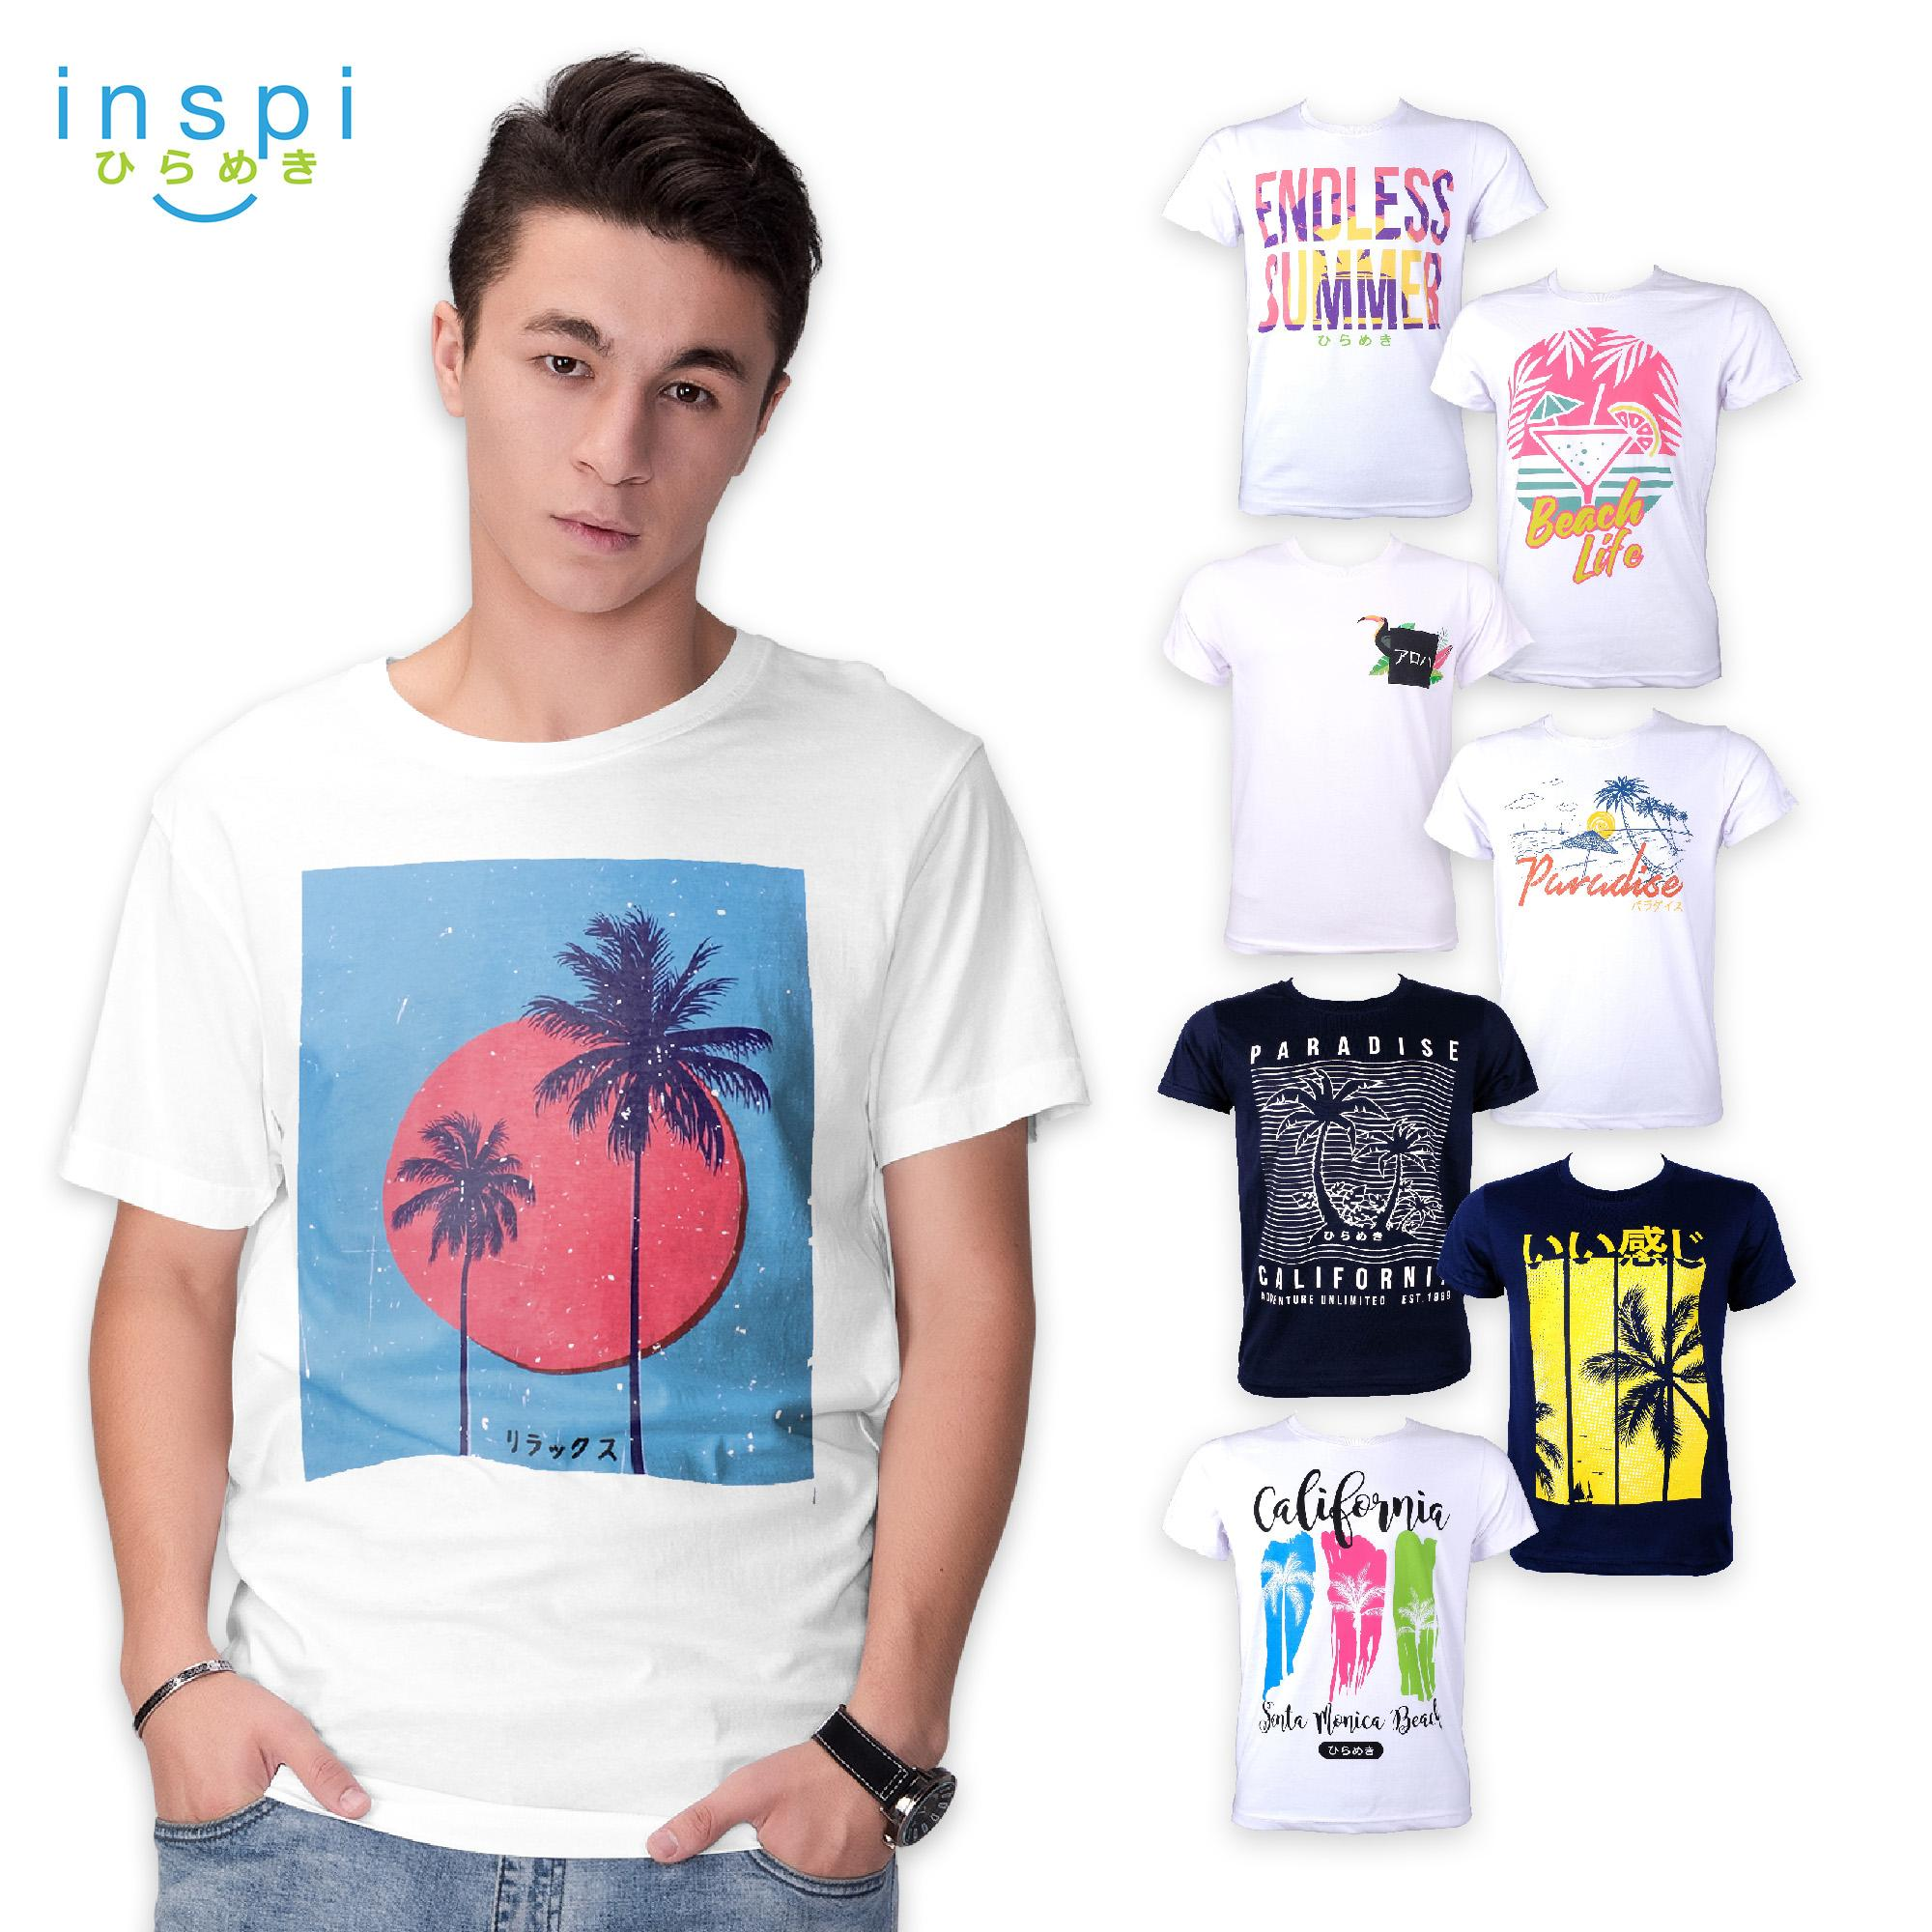 466c4906e400 INSPI Tees Summer Collection tshirt printed graphic tee Mens t shirt shirts  for men tshirts sale